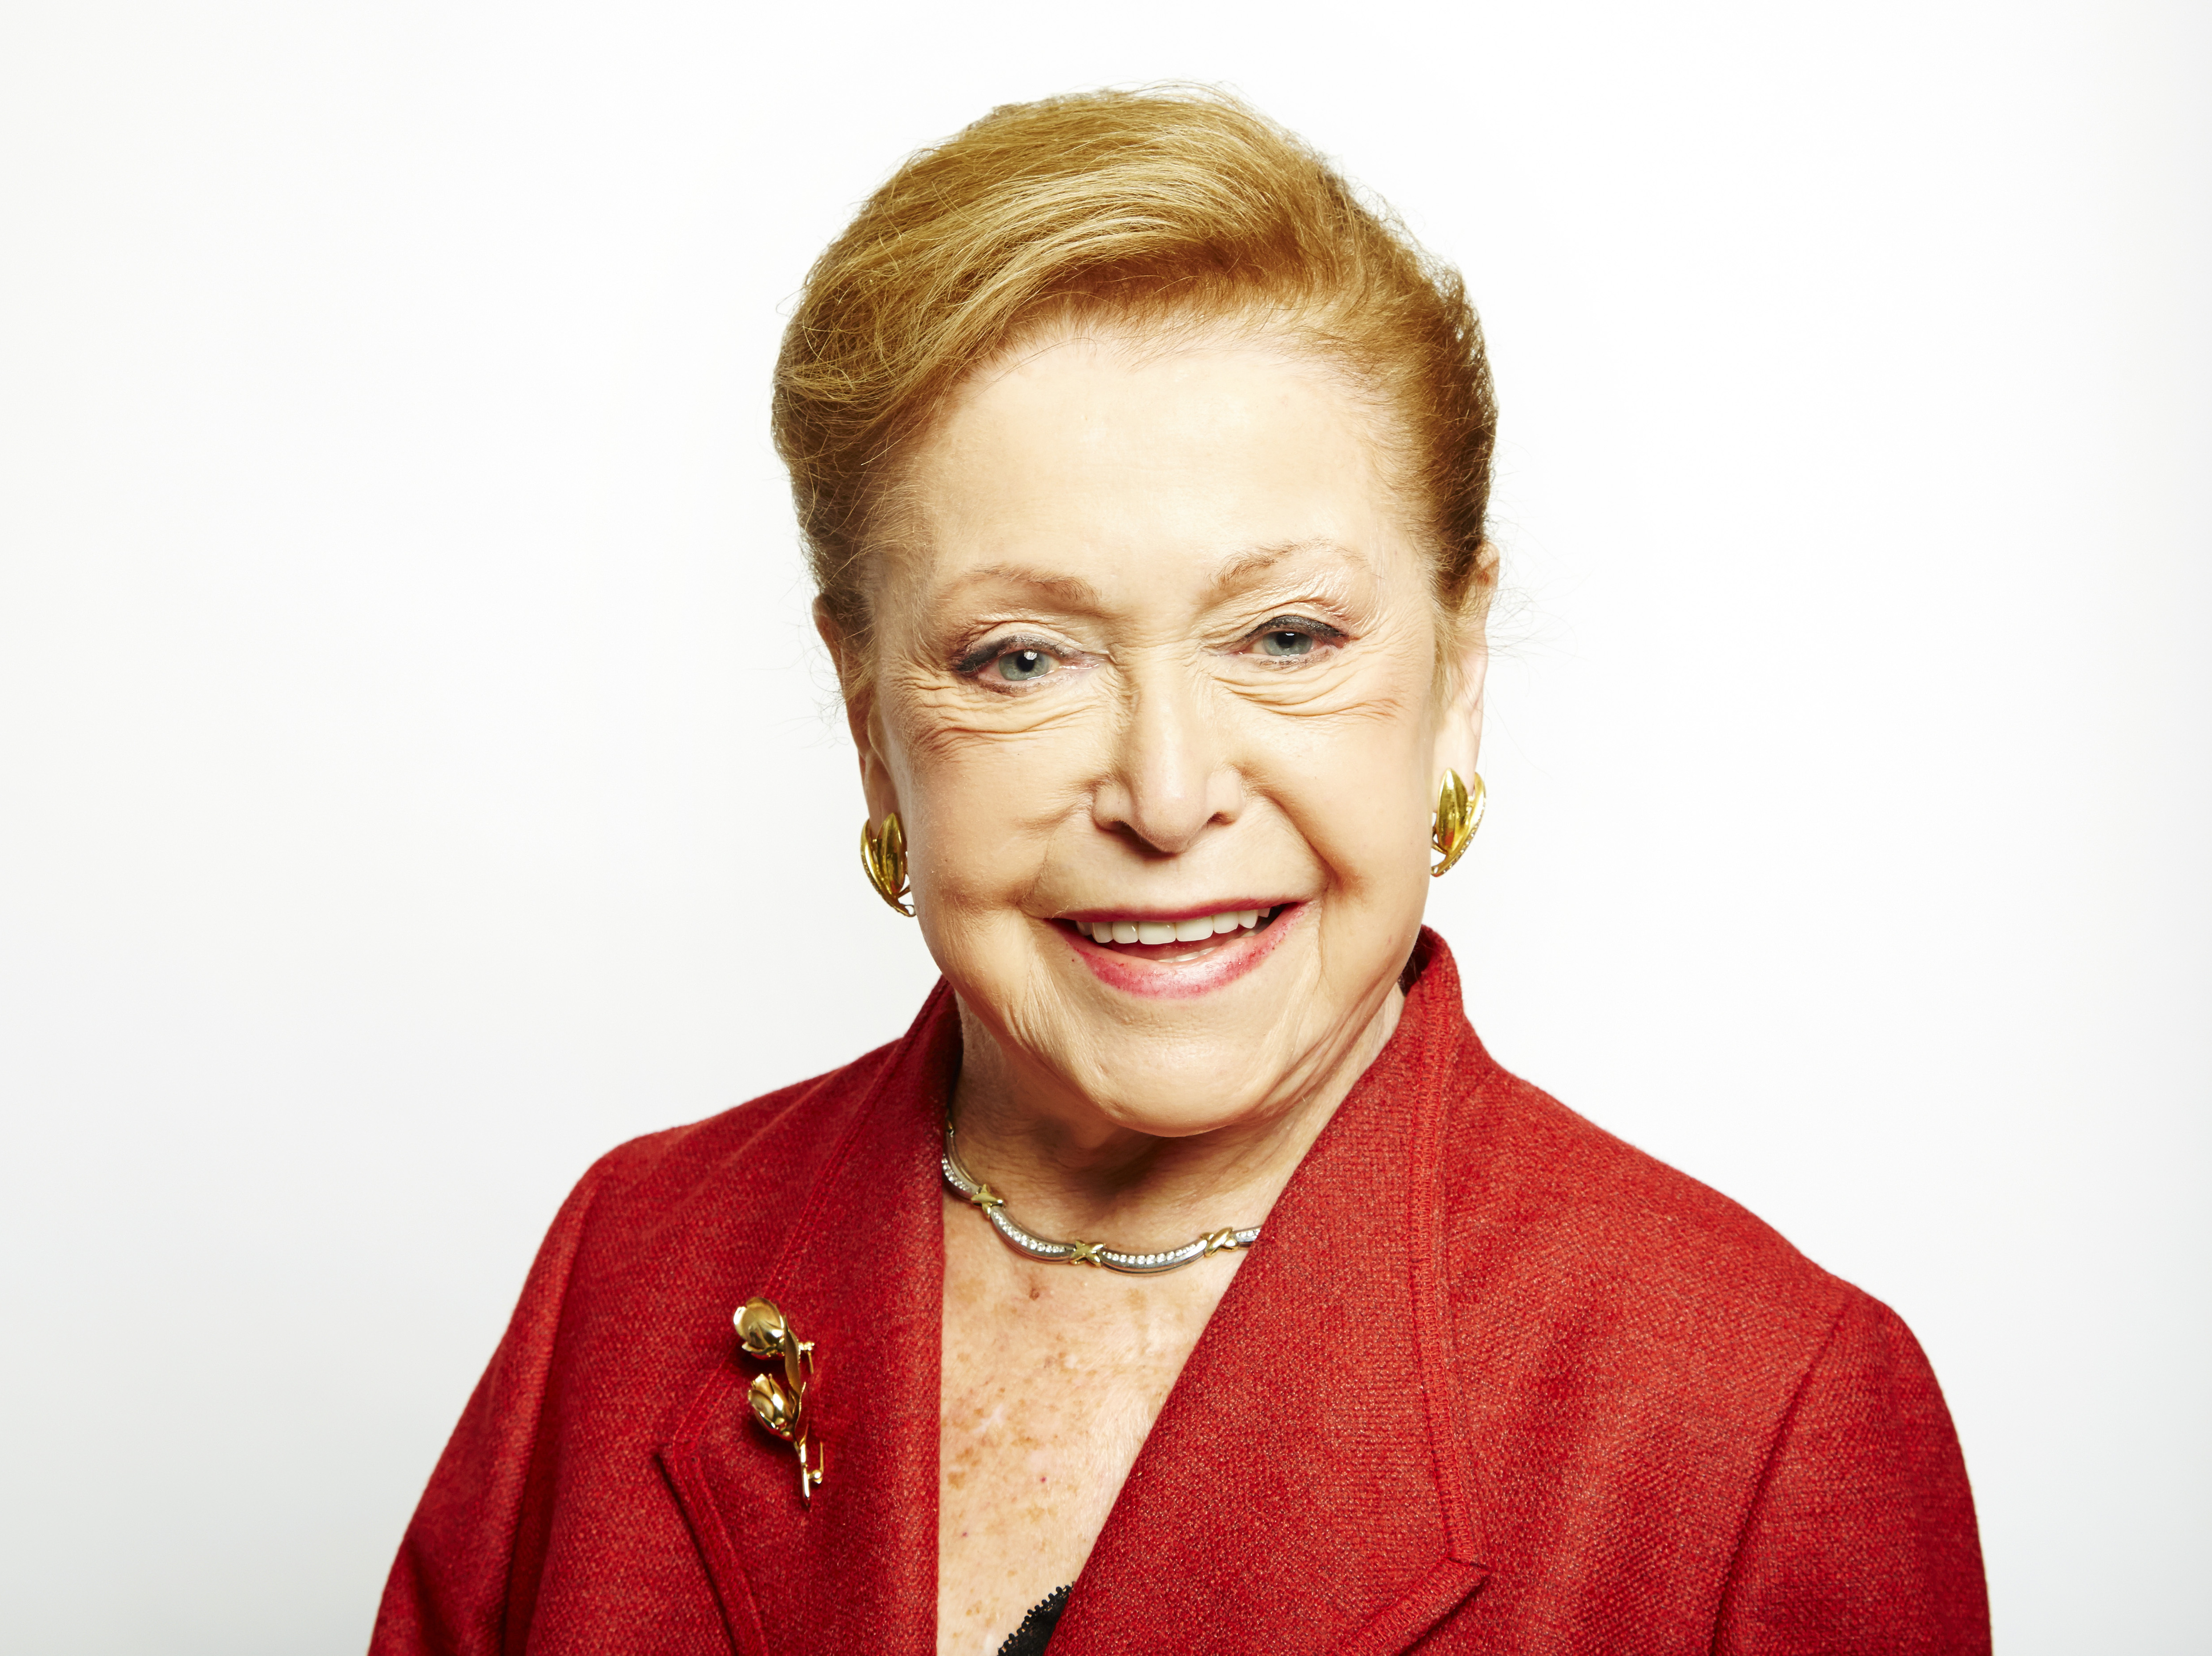 Not My Job: Author Mary Higgins Clark Gets Quizzed On Writer's Block